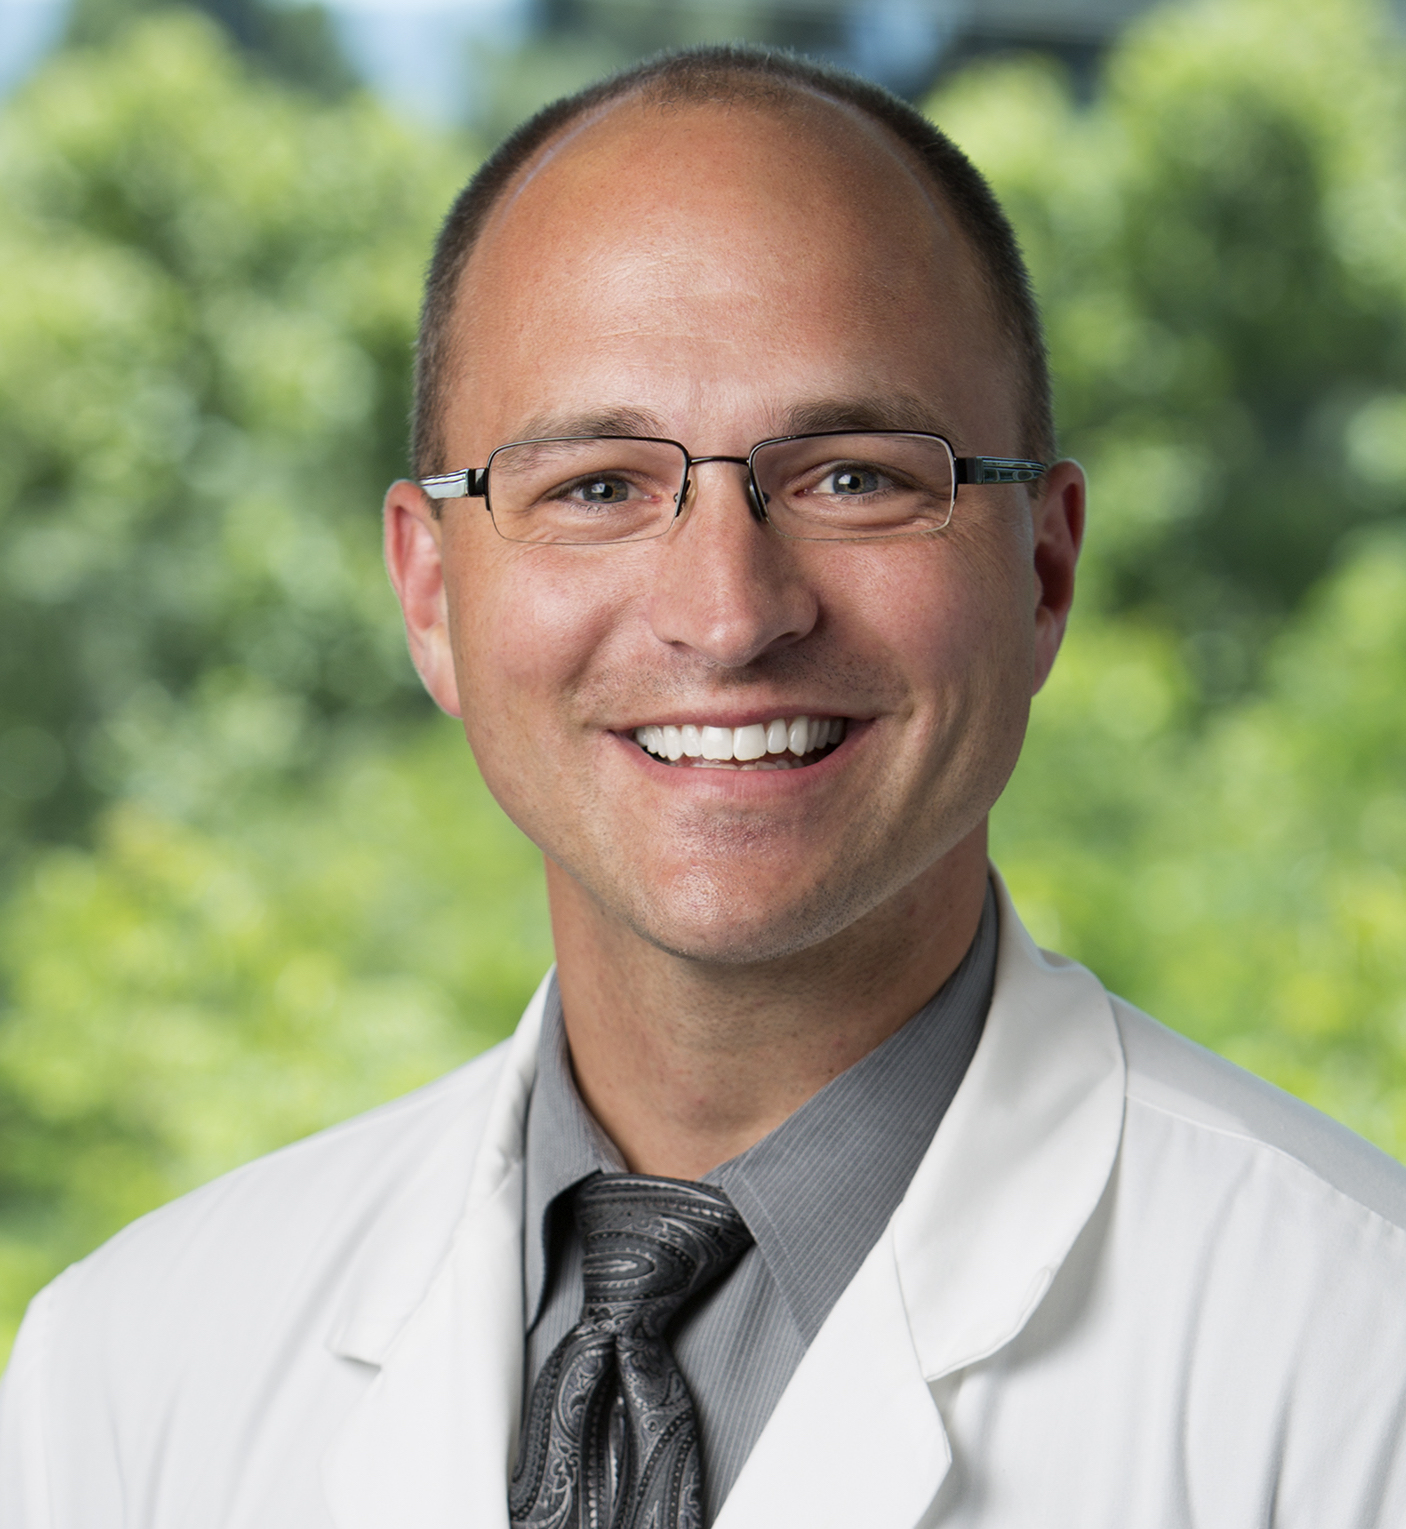 Keynote Speaker - We are excited to have Dr. Chad Ruoff as our 2019 Keynote Speaker!Dr. Ruoff is board certified in sleep medicine, obesity medicine, and internal medicine. His career in sleep medicine began as a sleep technologist in 1998 while completing his undergraduate education at Georgetown University. He received his internal medicine training at Baylor College of Medicine and then completed a sleep medicine fellowship at Stanford University in 2011. He remained at Stanford University as a faculty member and Associate Fellowship Program Director until 2016.During his tenure at Stanford, working with Drs. Mignot and Guilleminault, he developed a strong interest in the clinical evaluation and treatment of CNS hypersomnias. He continues to work with Stanford Sleep fellows as an Adjunct Clinical Assistant Professor. He now practices both Sleep and Obesity Medicine at Kaiser Permanente in Woodland Hills, California.